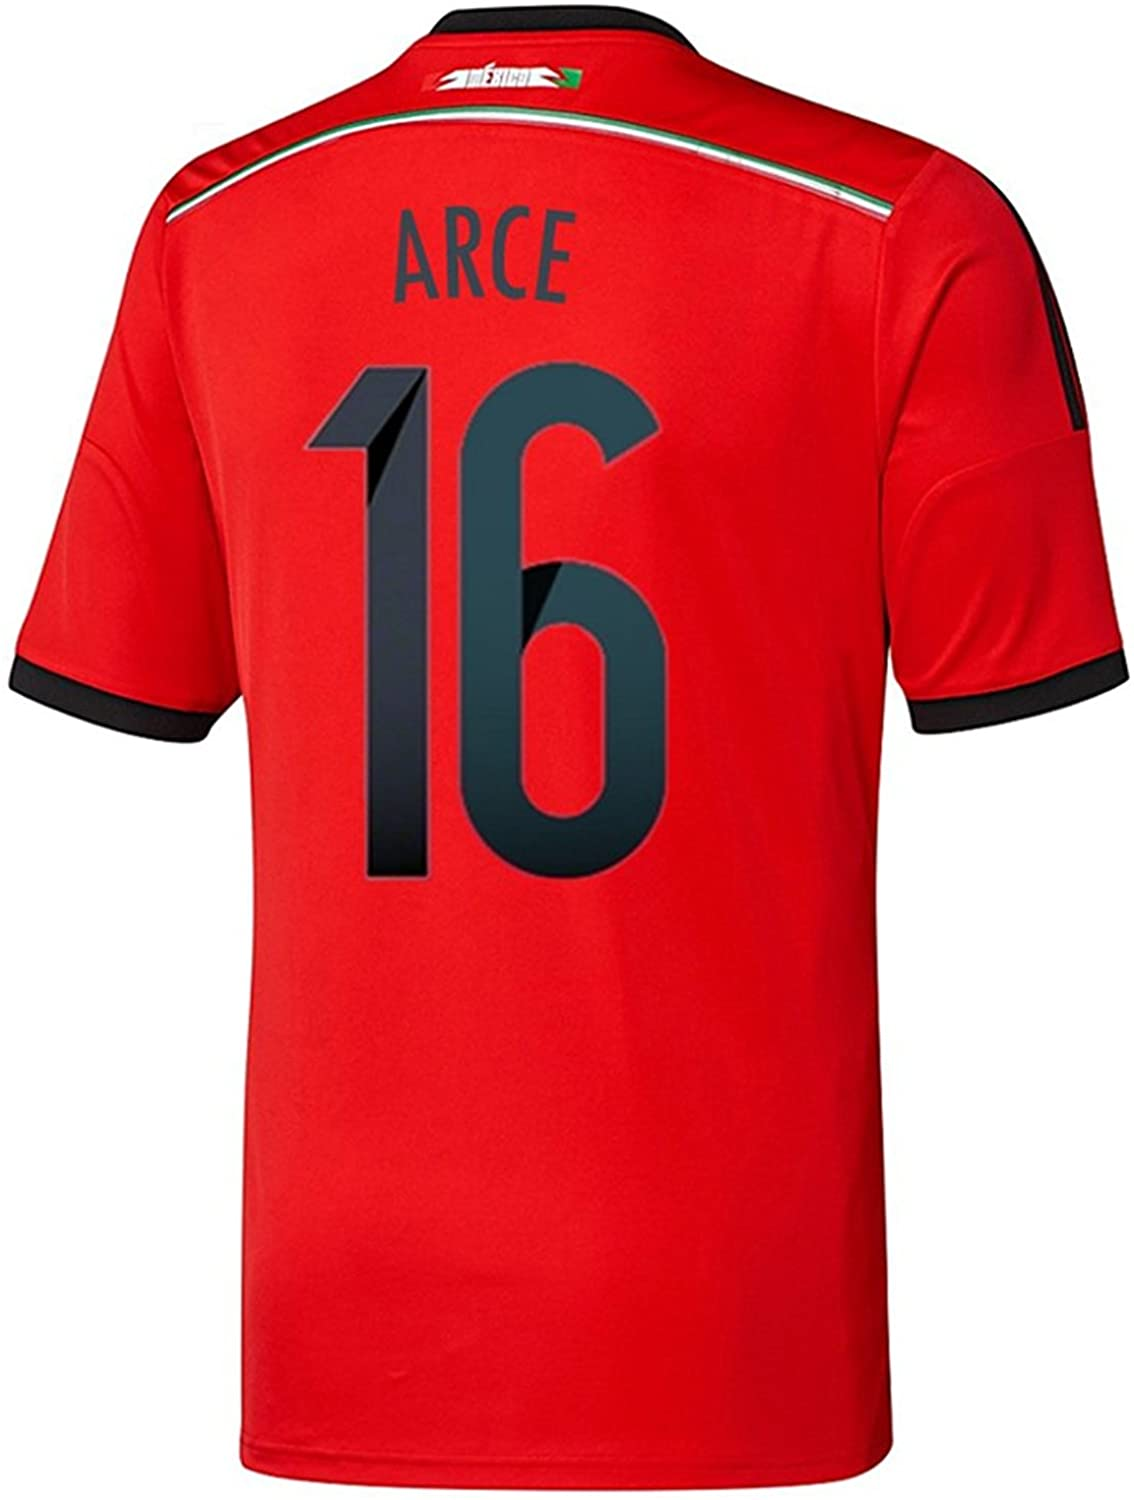 adidas ARCE #16 Mexico Away Jersey World Cup 2014